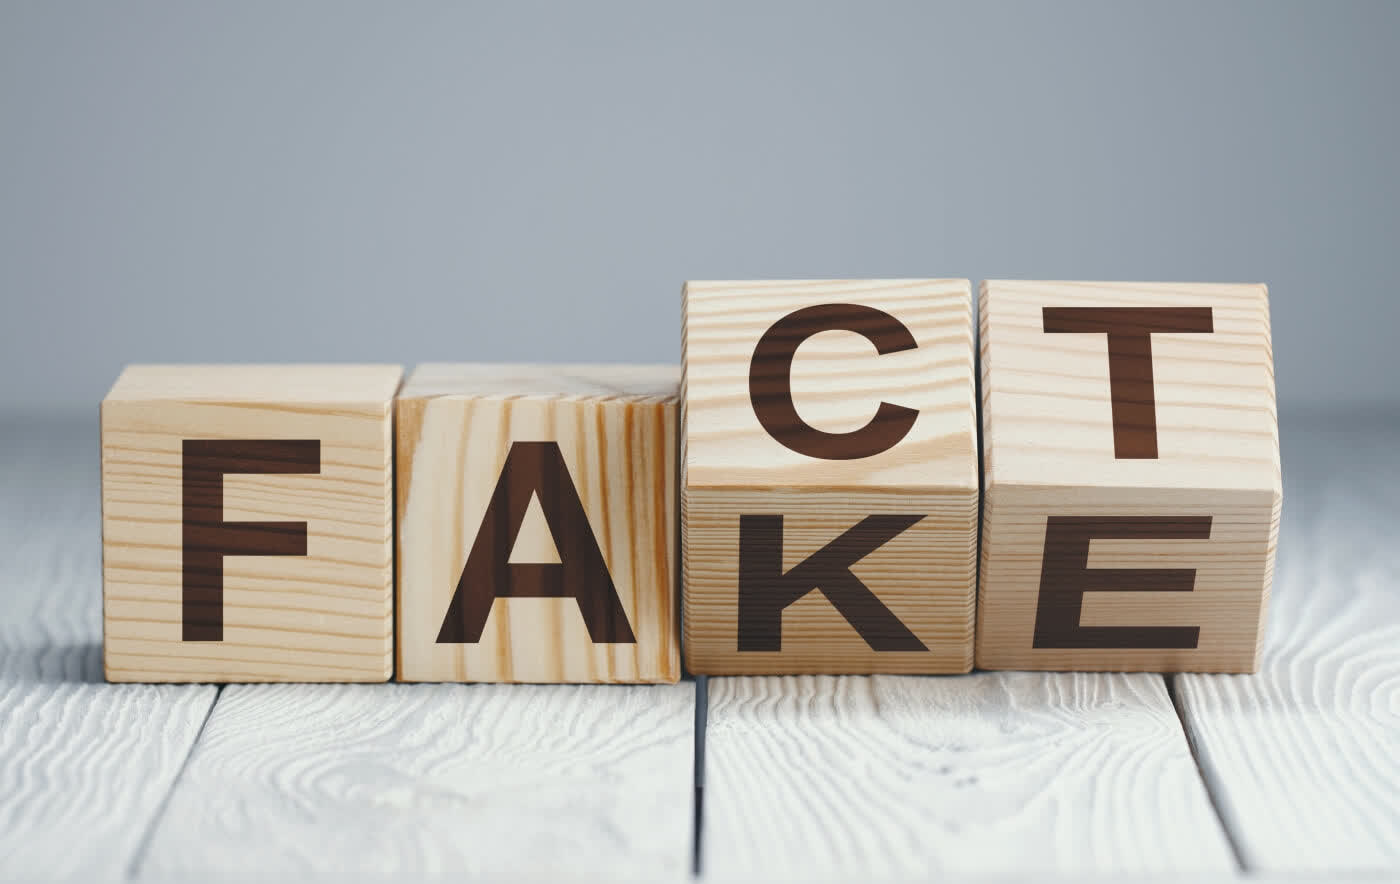 More Americans believe the government, tech firms should take steps to restrict false information online